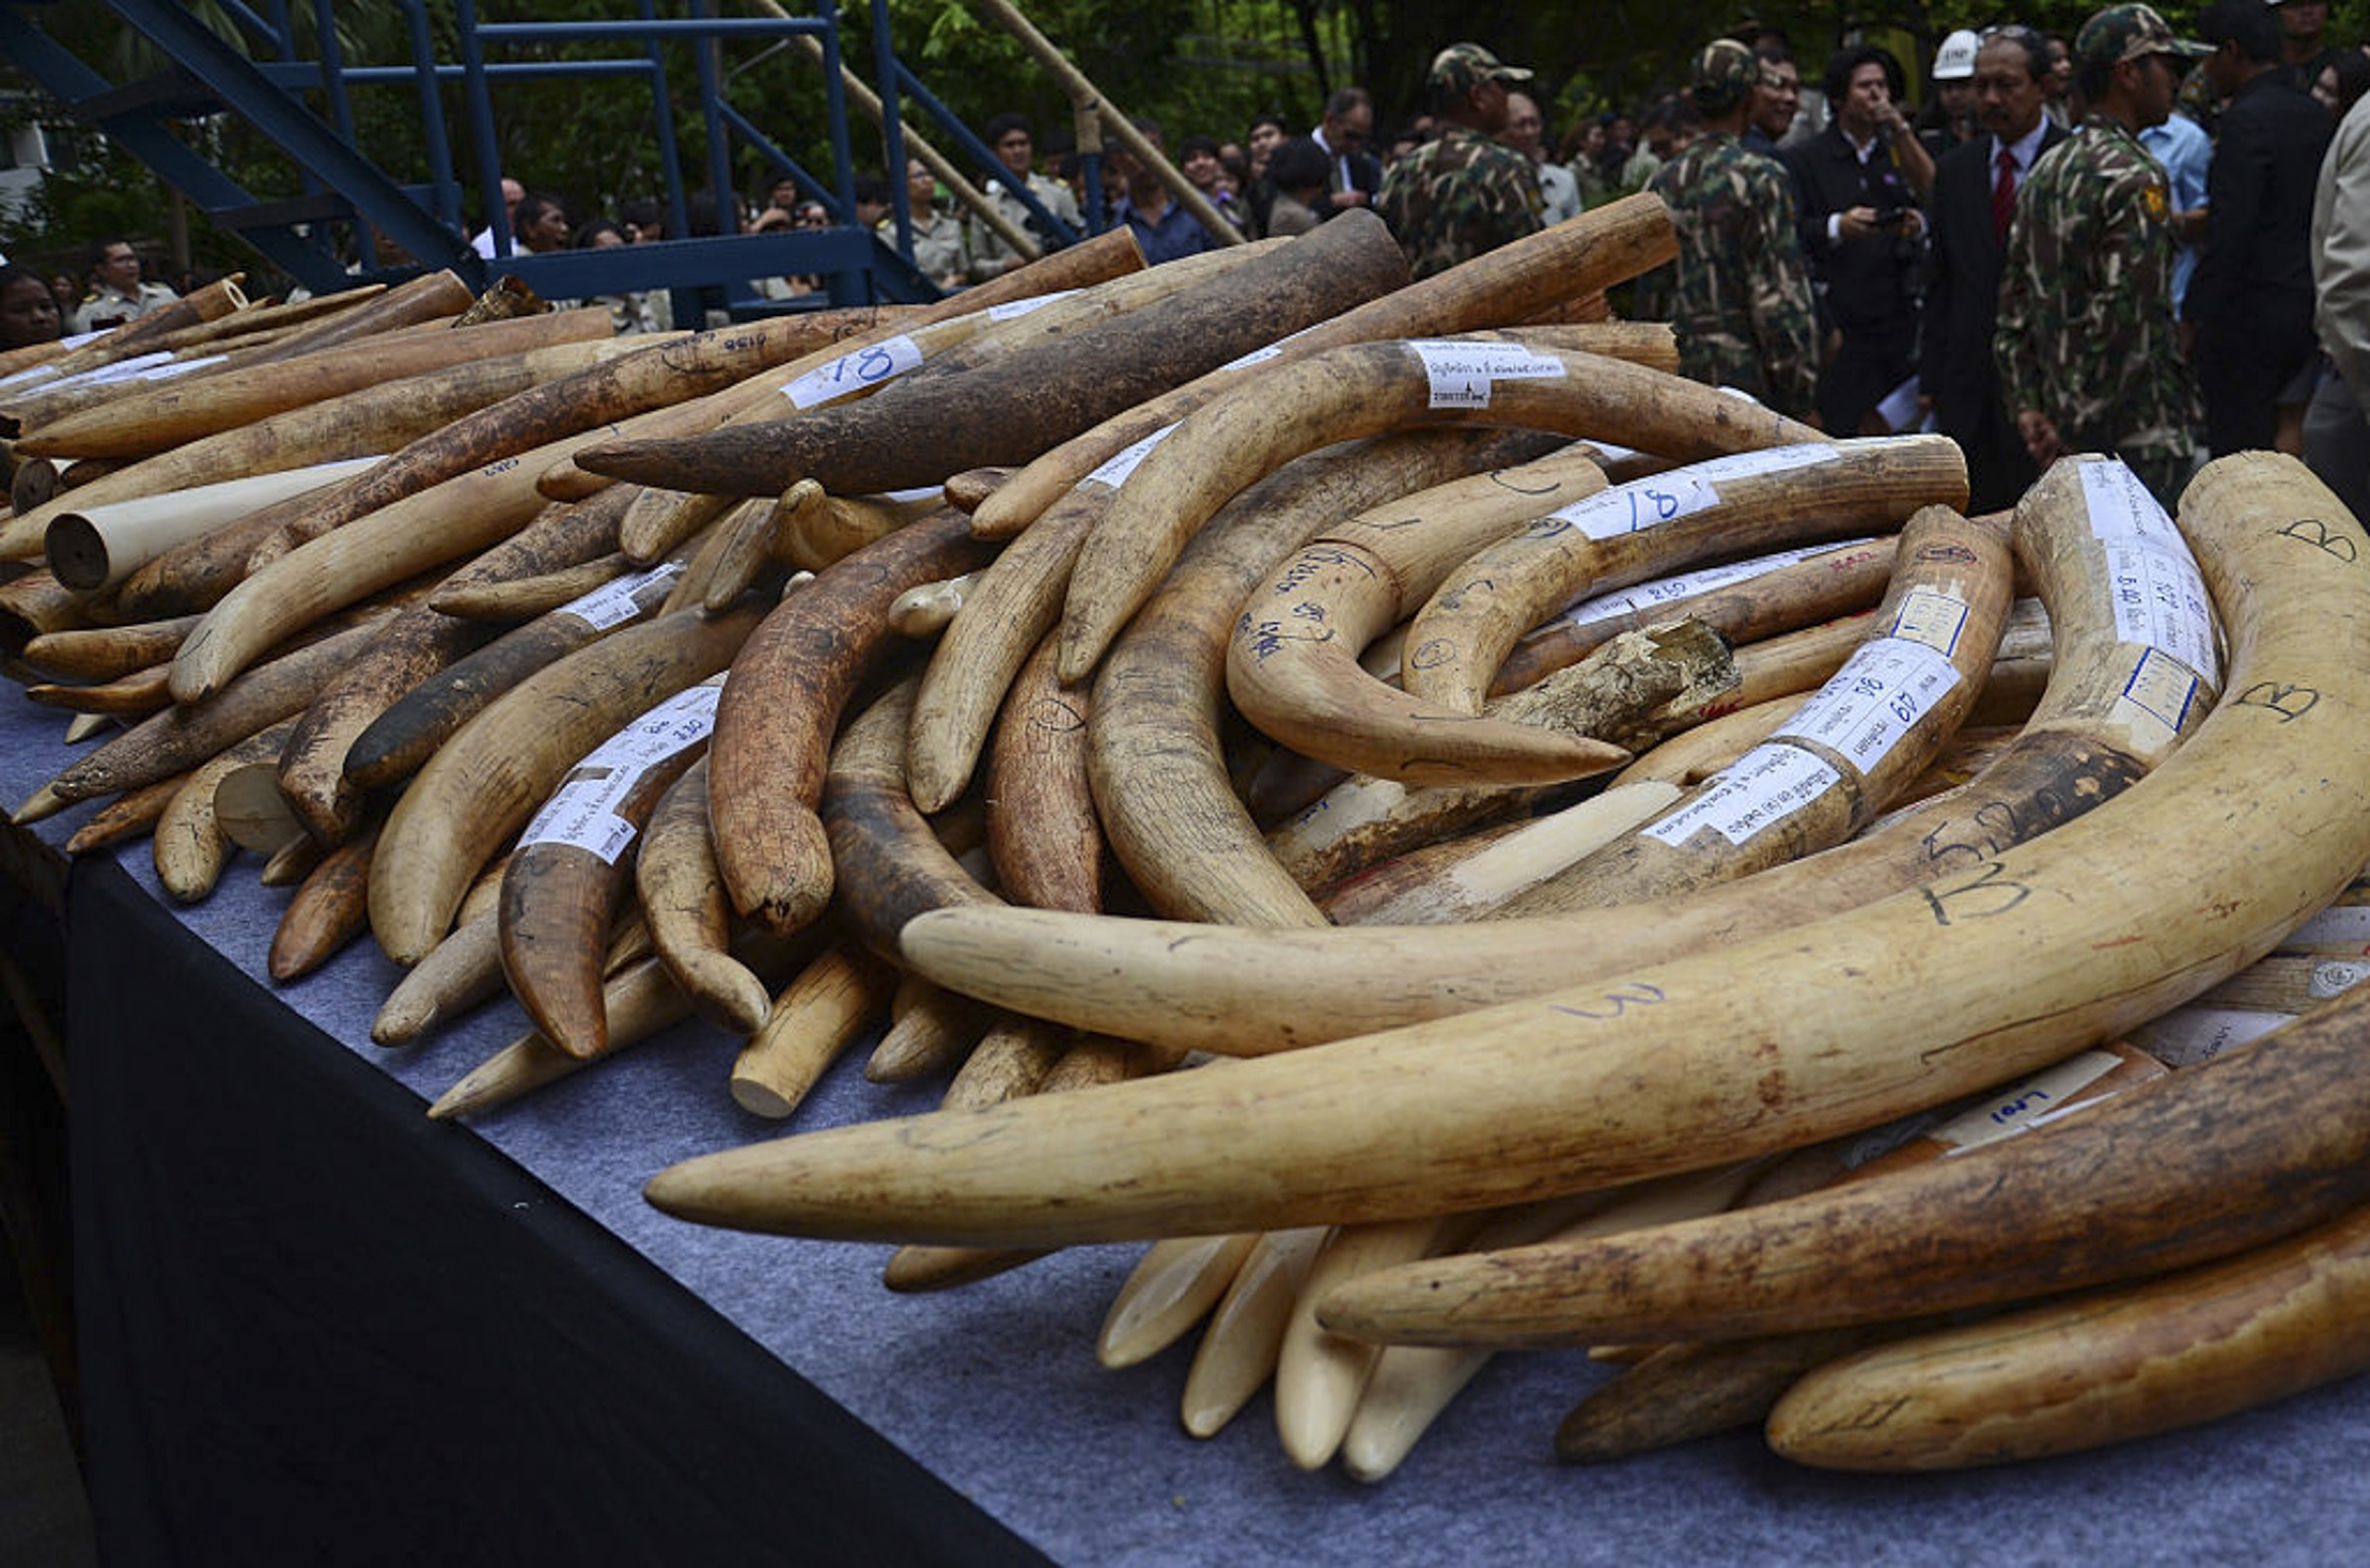 This pile of illegal ivory was part of a campaign to destroy more that 2 tons of illegal ivory at the Department of National Parks in Bangkok, Thailand in 2015. Photograph by NurPhoto/NurPhoto via Getty Images